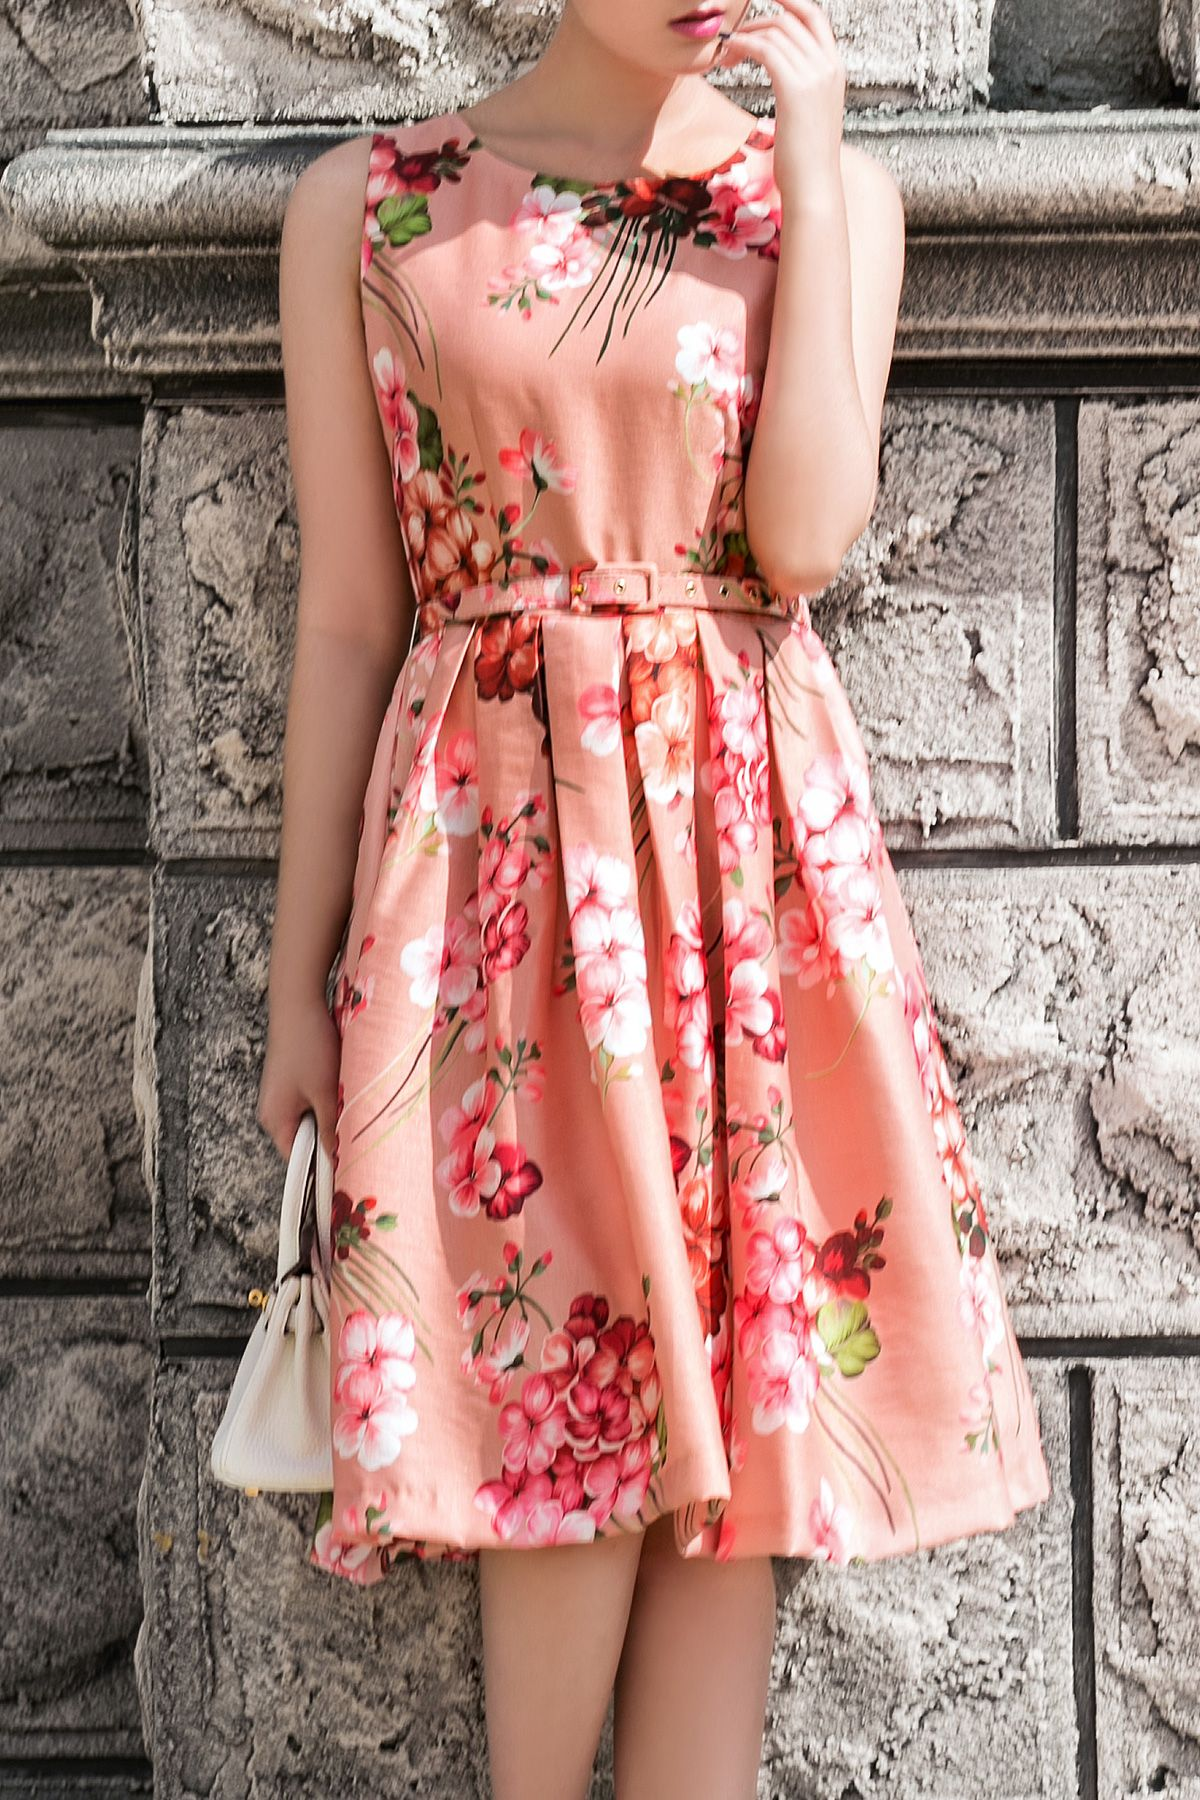 I love this style of dress vintage style coral pink floral print